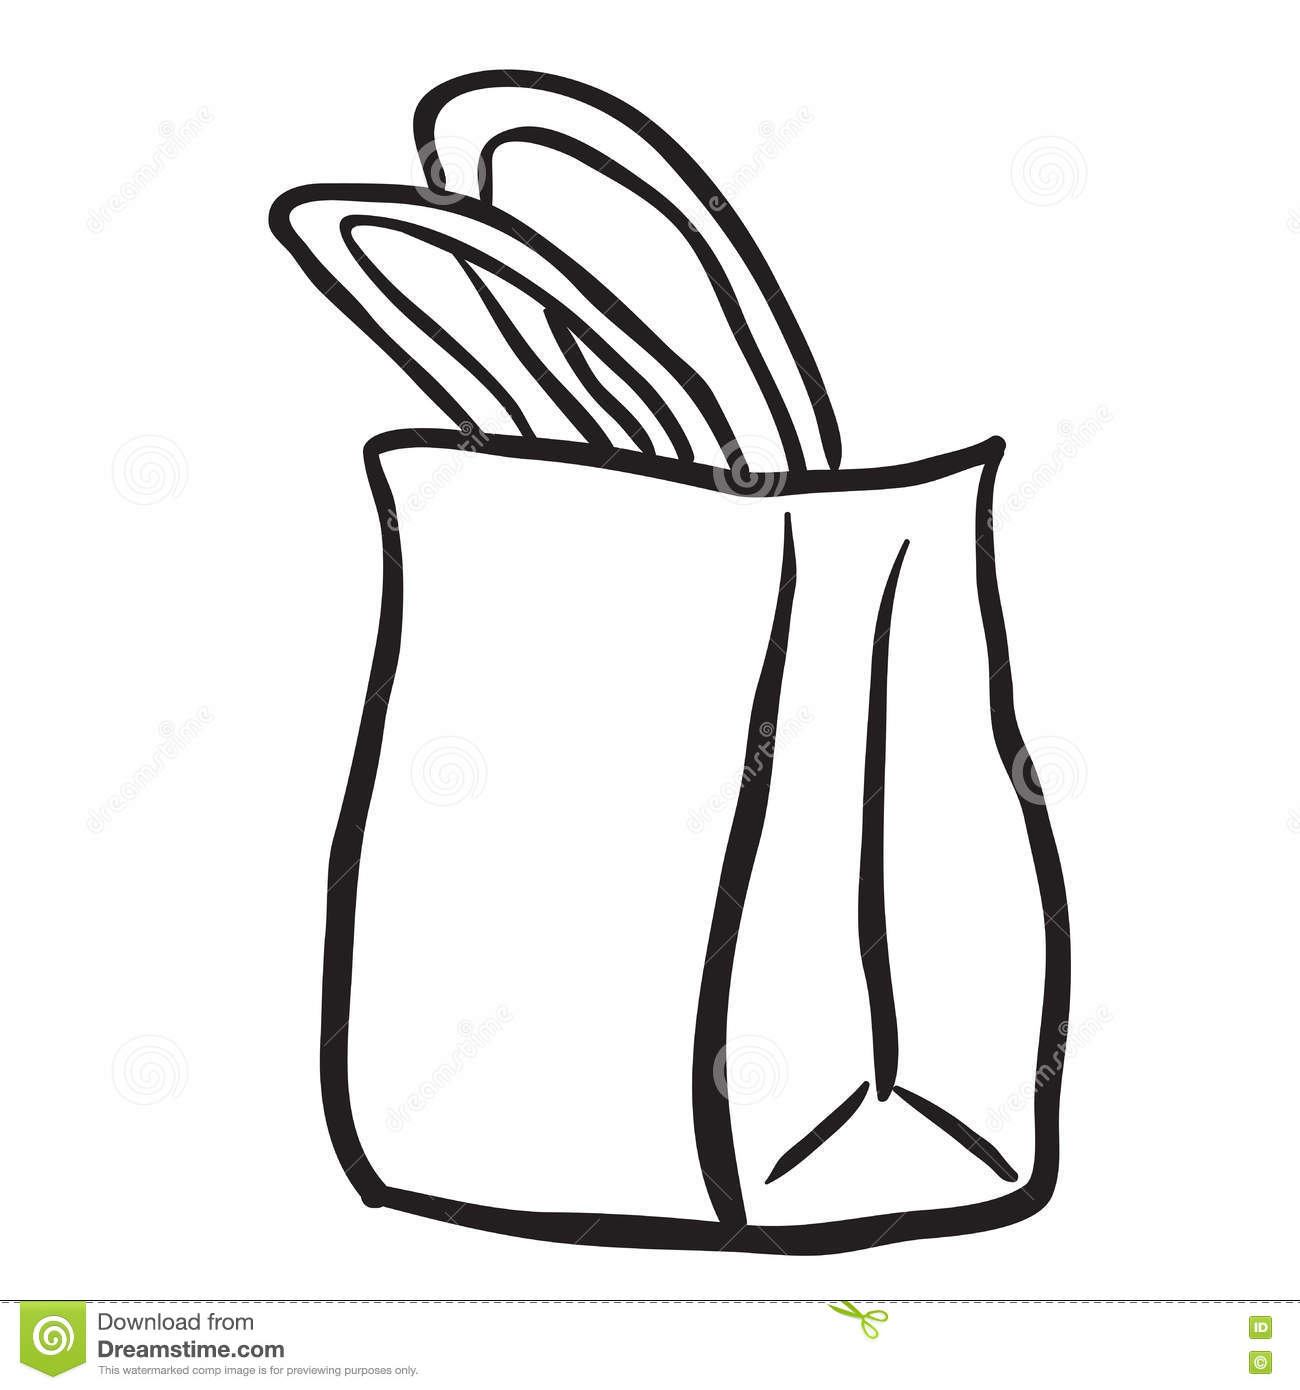 Grocery Bags Clipart Black And White